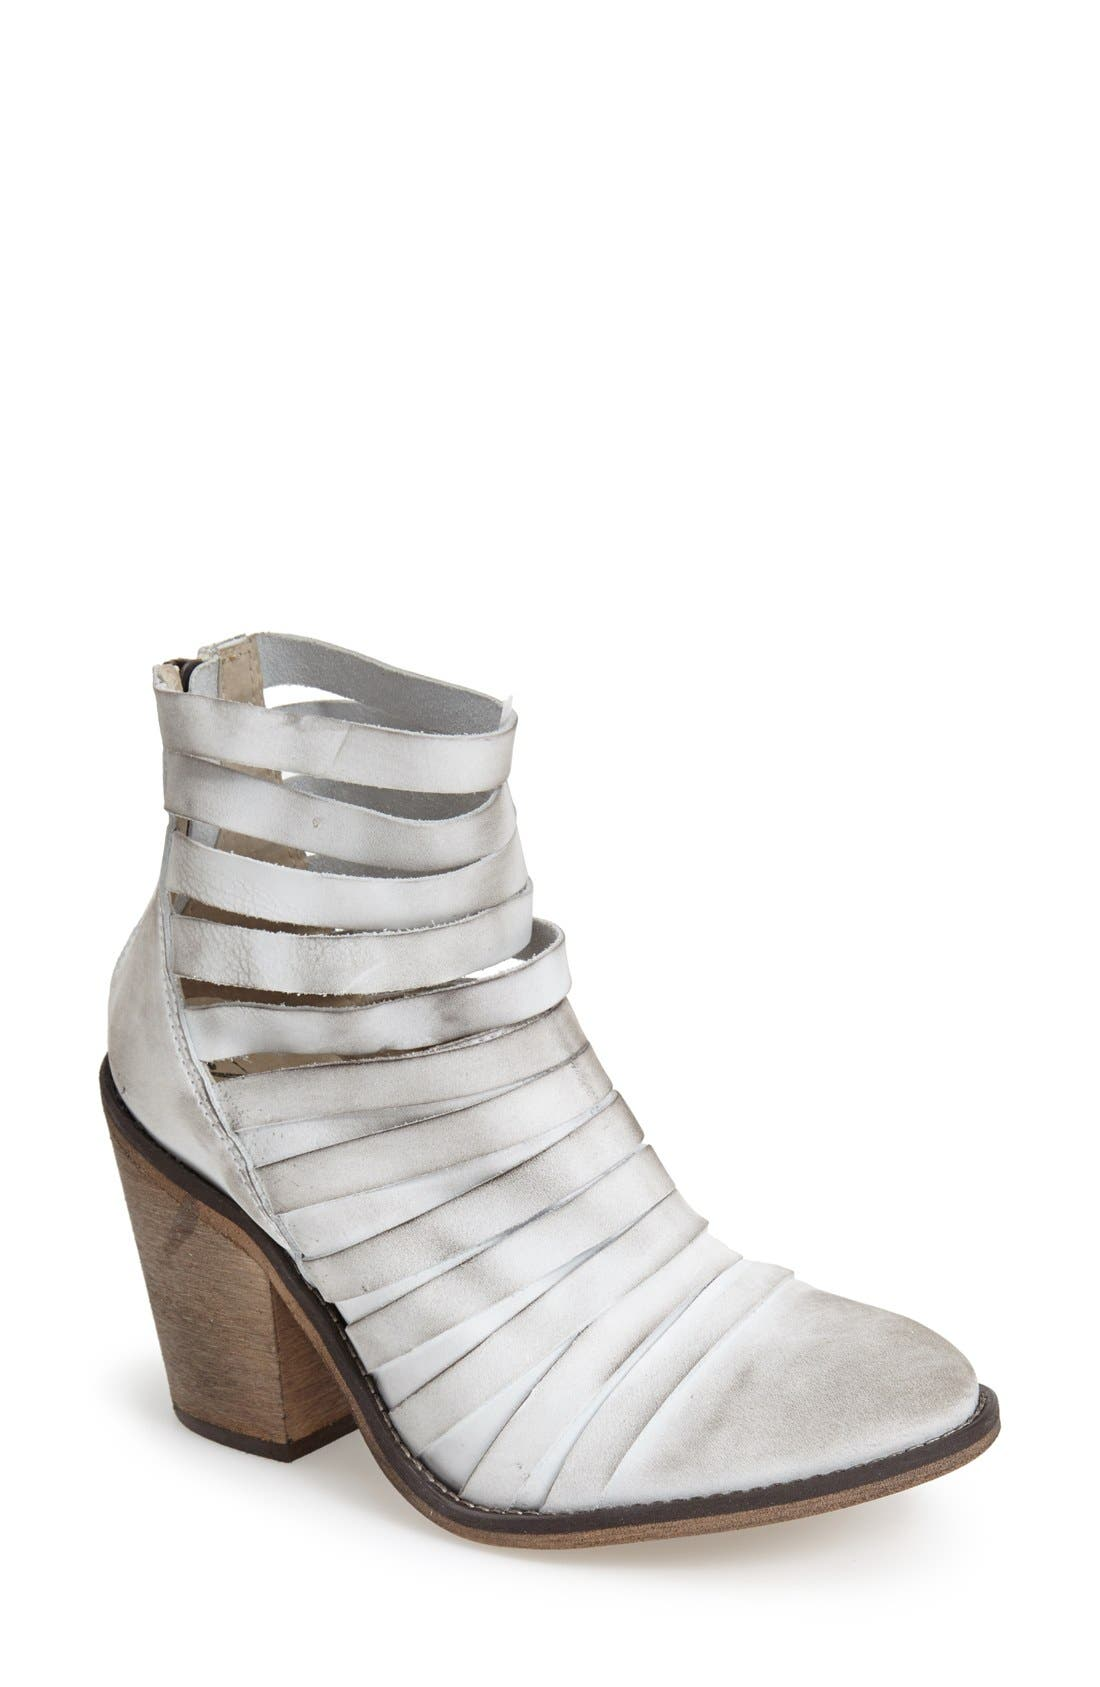 Alternate Image 1 Selected - Free People 'Hybrid' Strappy Leather Bootie (Women)